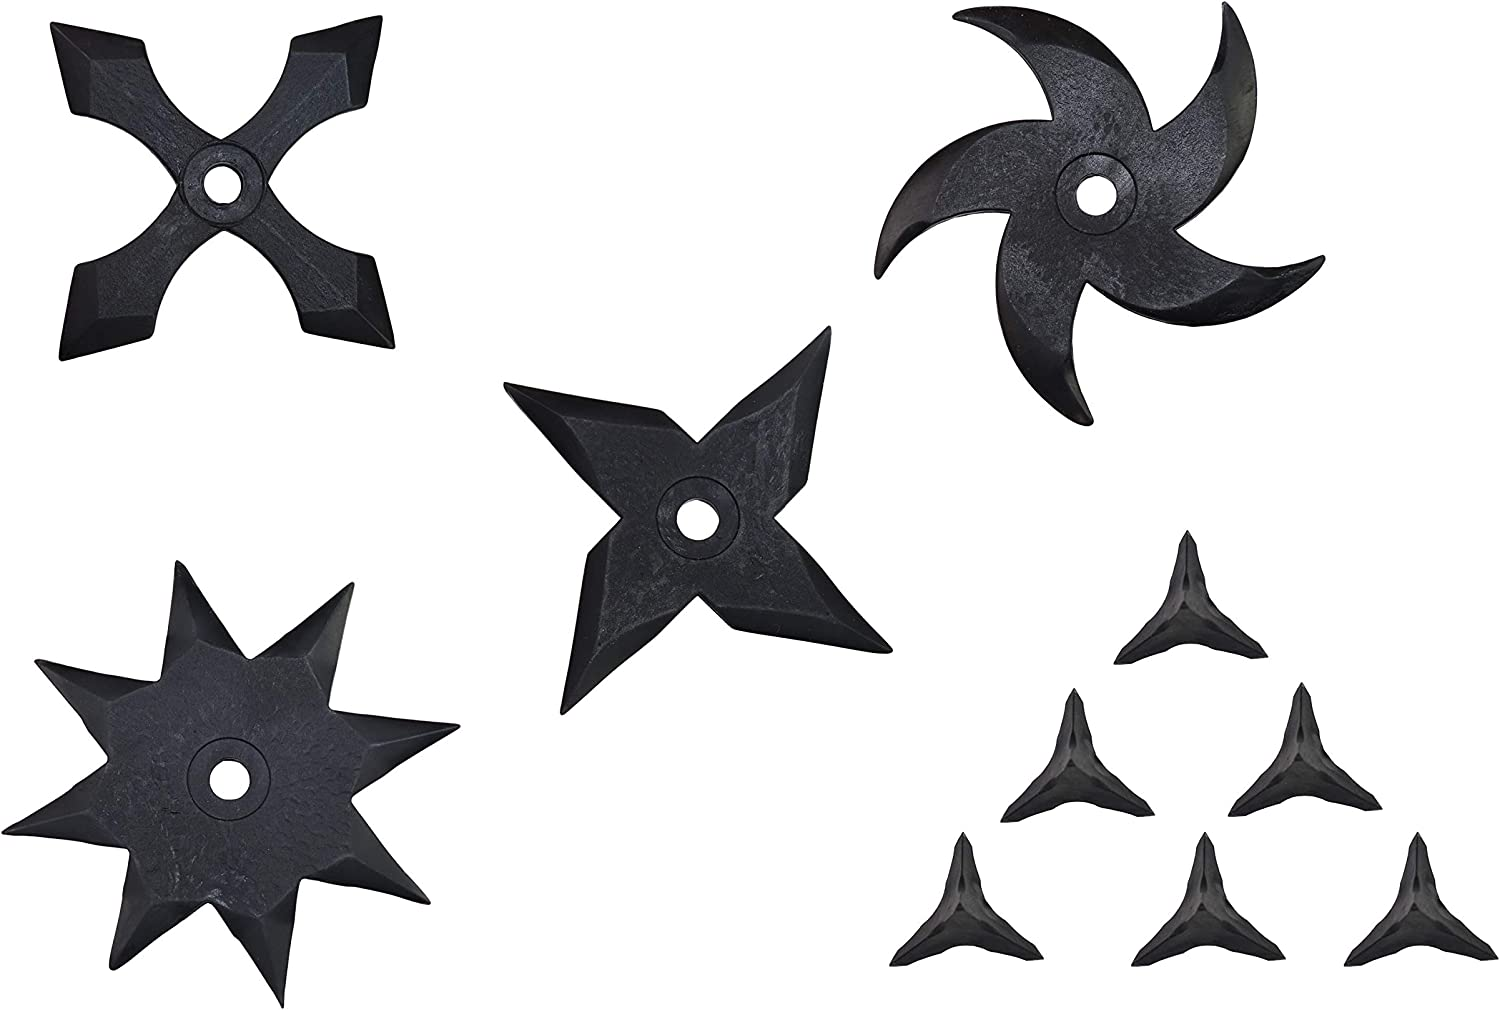 5 pieces set Roppo Ninja Rubber Throwing Star